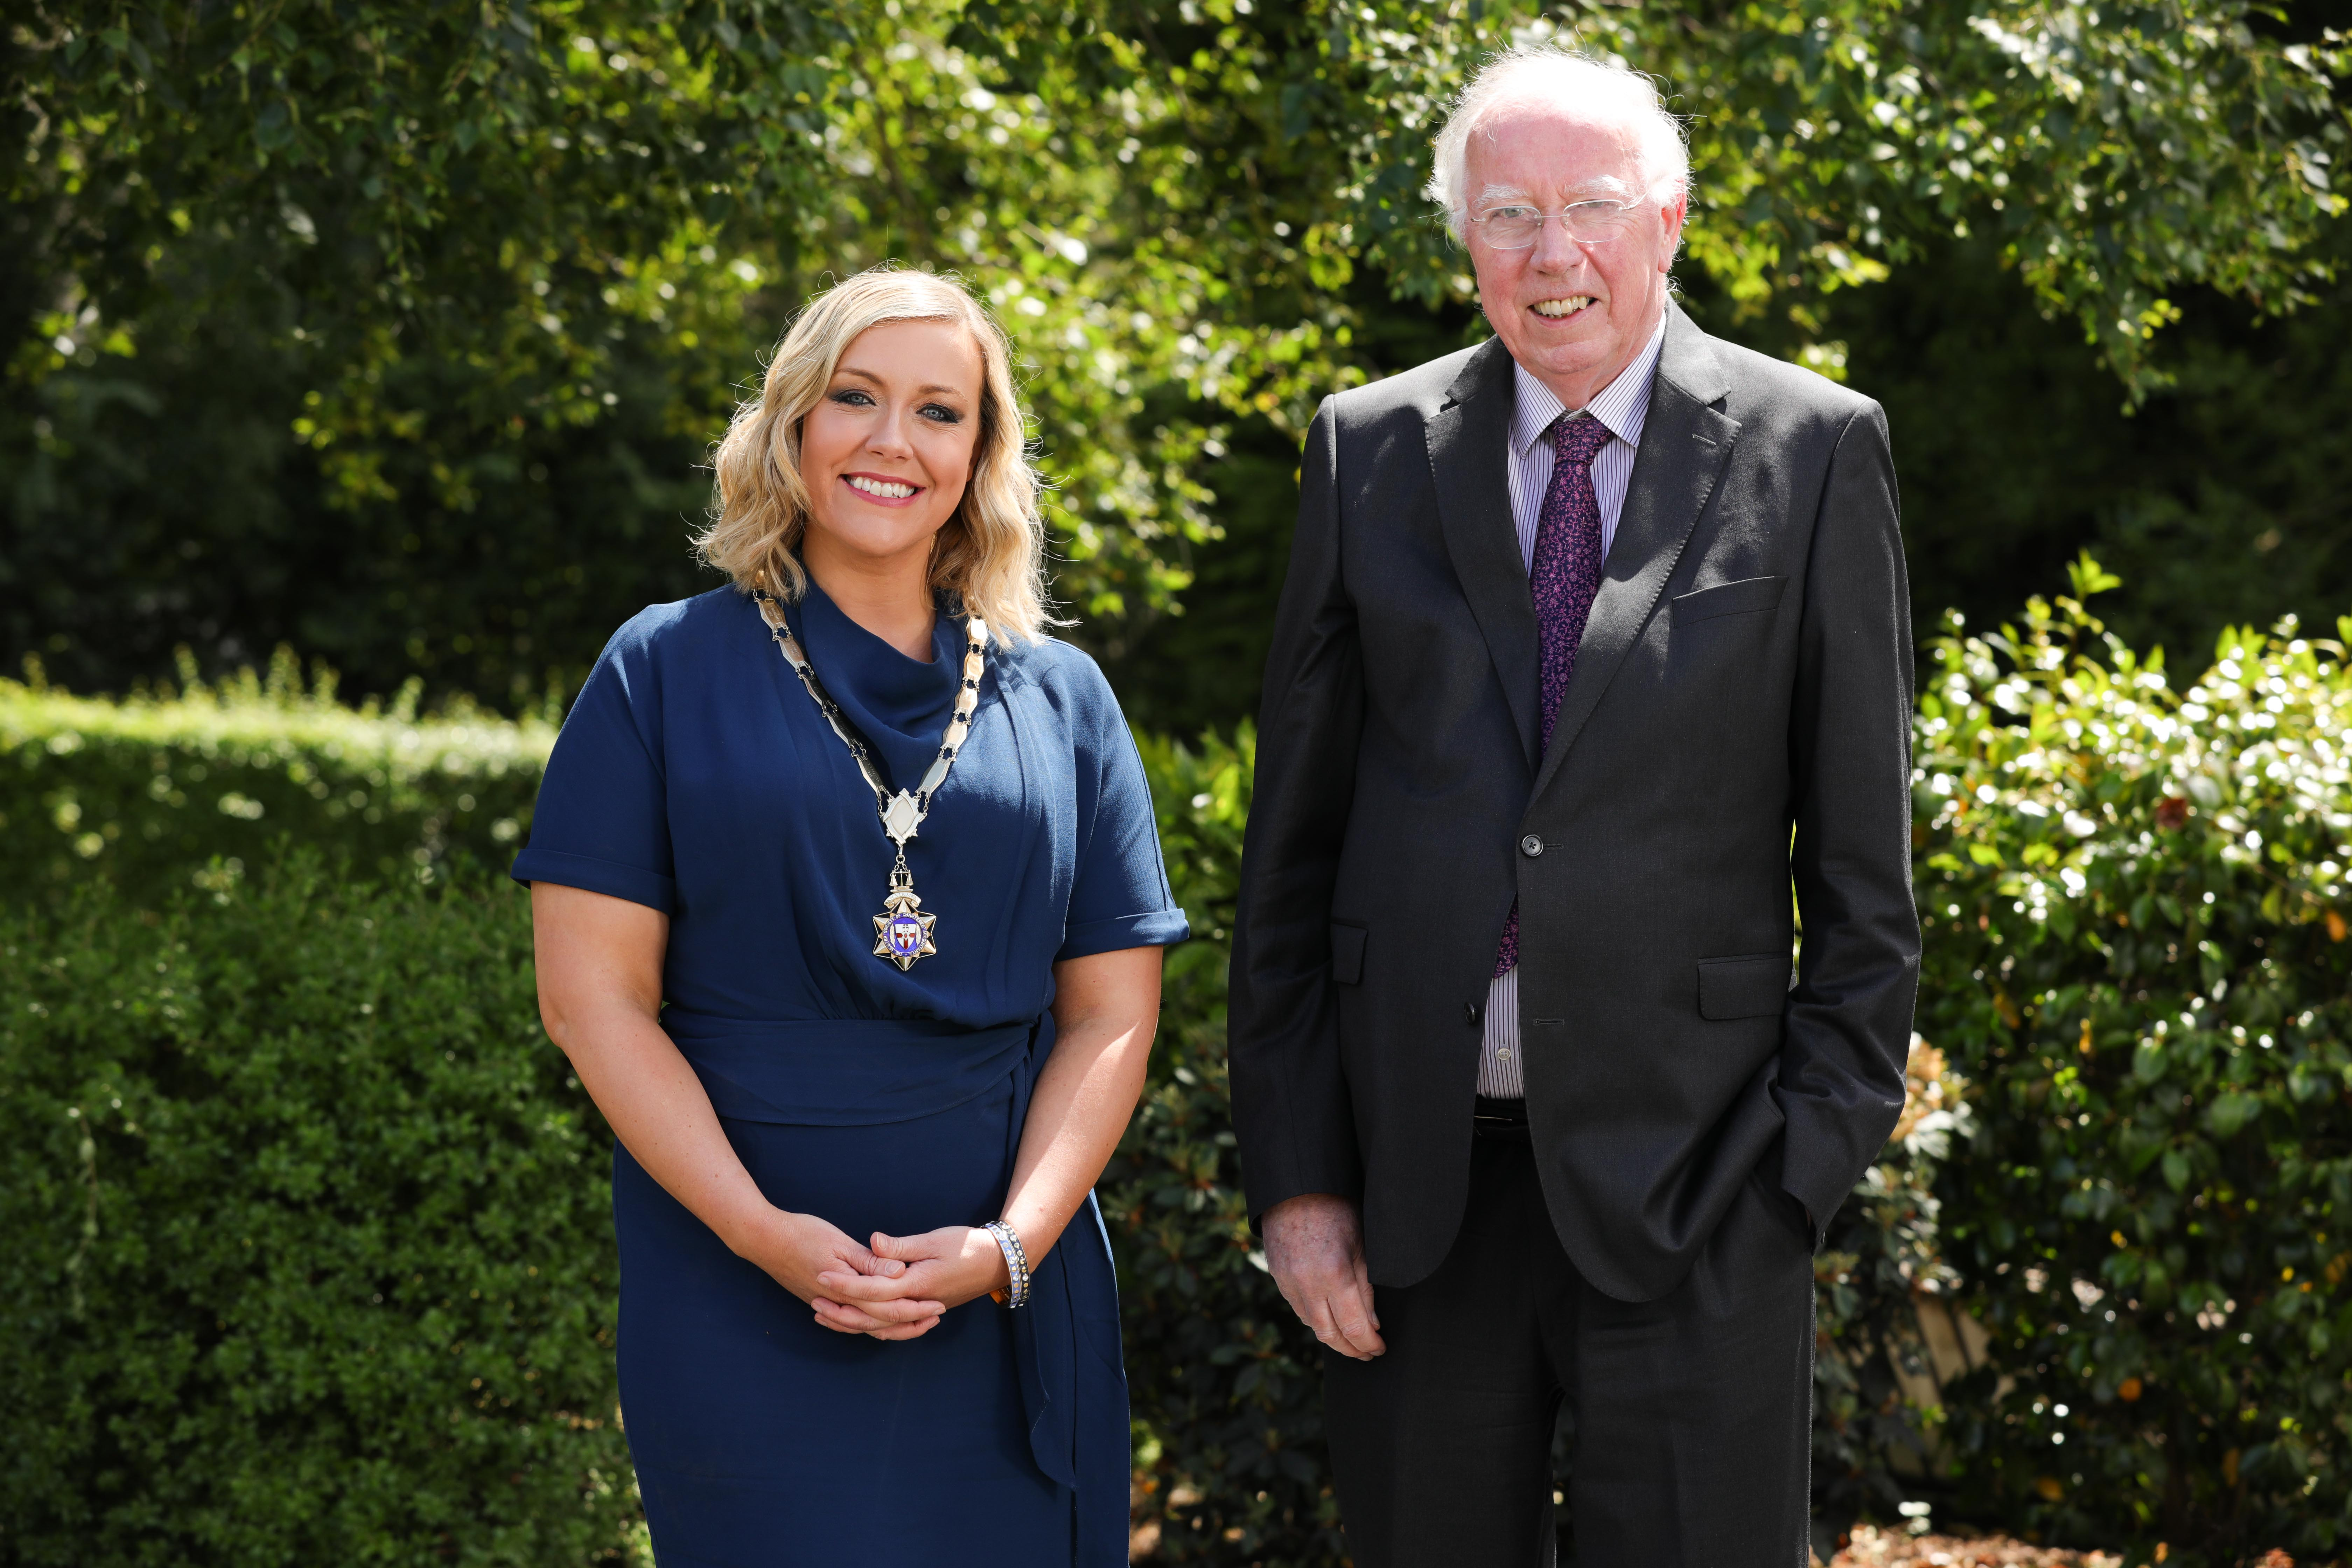 Pictured after the Ulster Society's Virtual AGM is new Chartered Accountants Ulster Society Chair Maeve Hunt, with her father James Hunt, who served as Chairman of the Ulster Society in 1990.